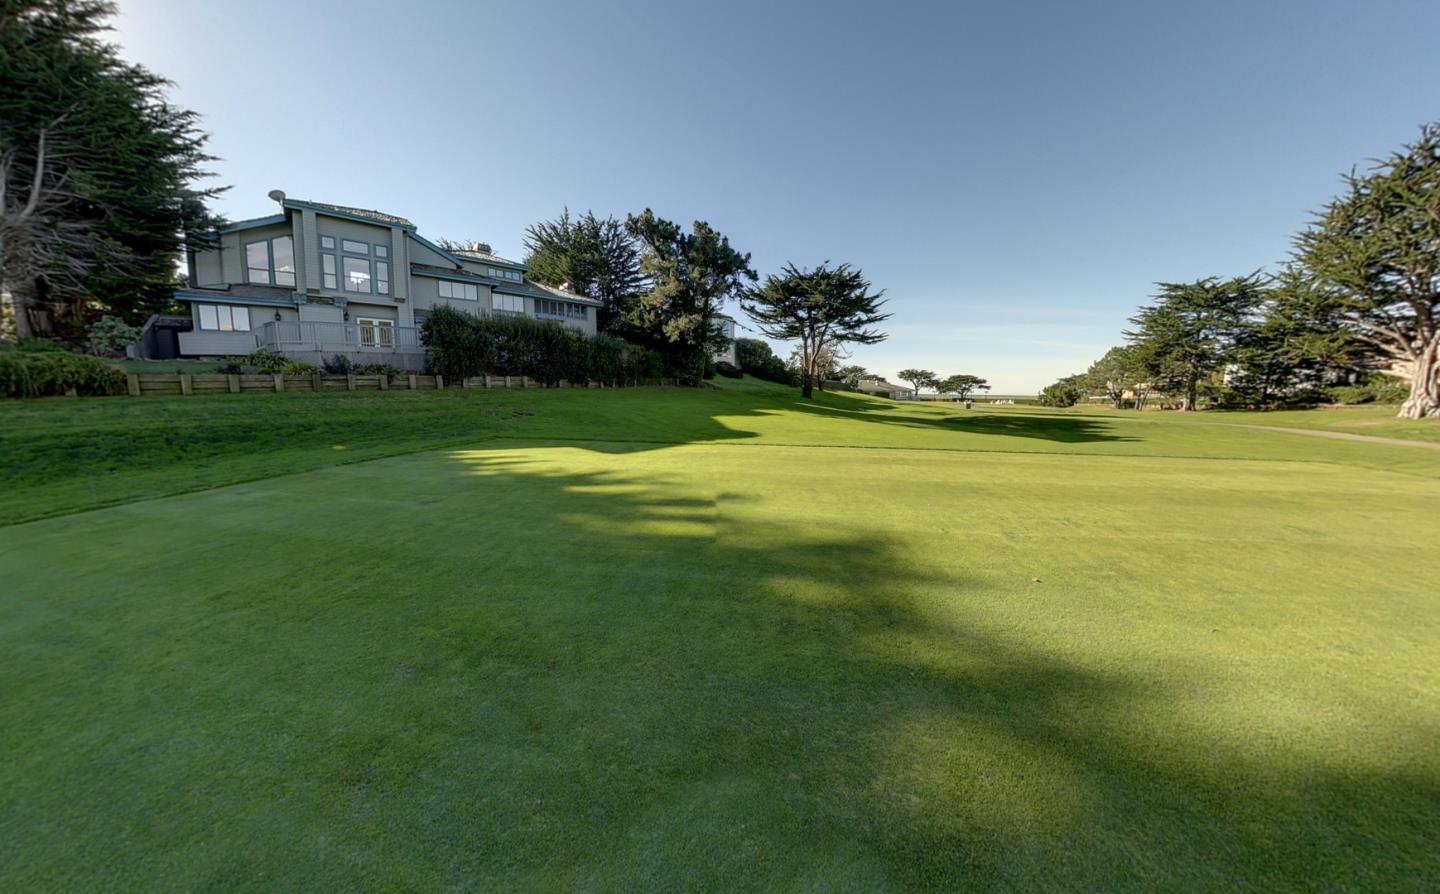 Single Family Home for Sale at 15 Ashdown Place Half Moon Bay, California 94019 United States